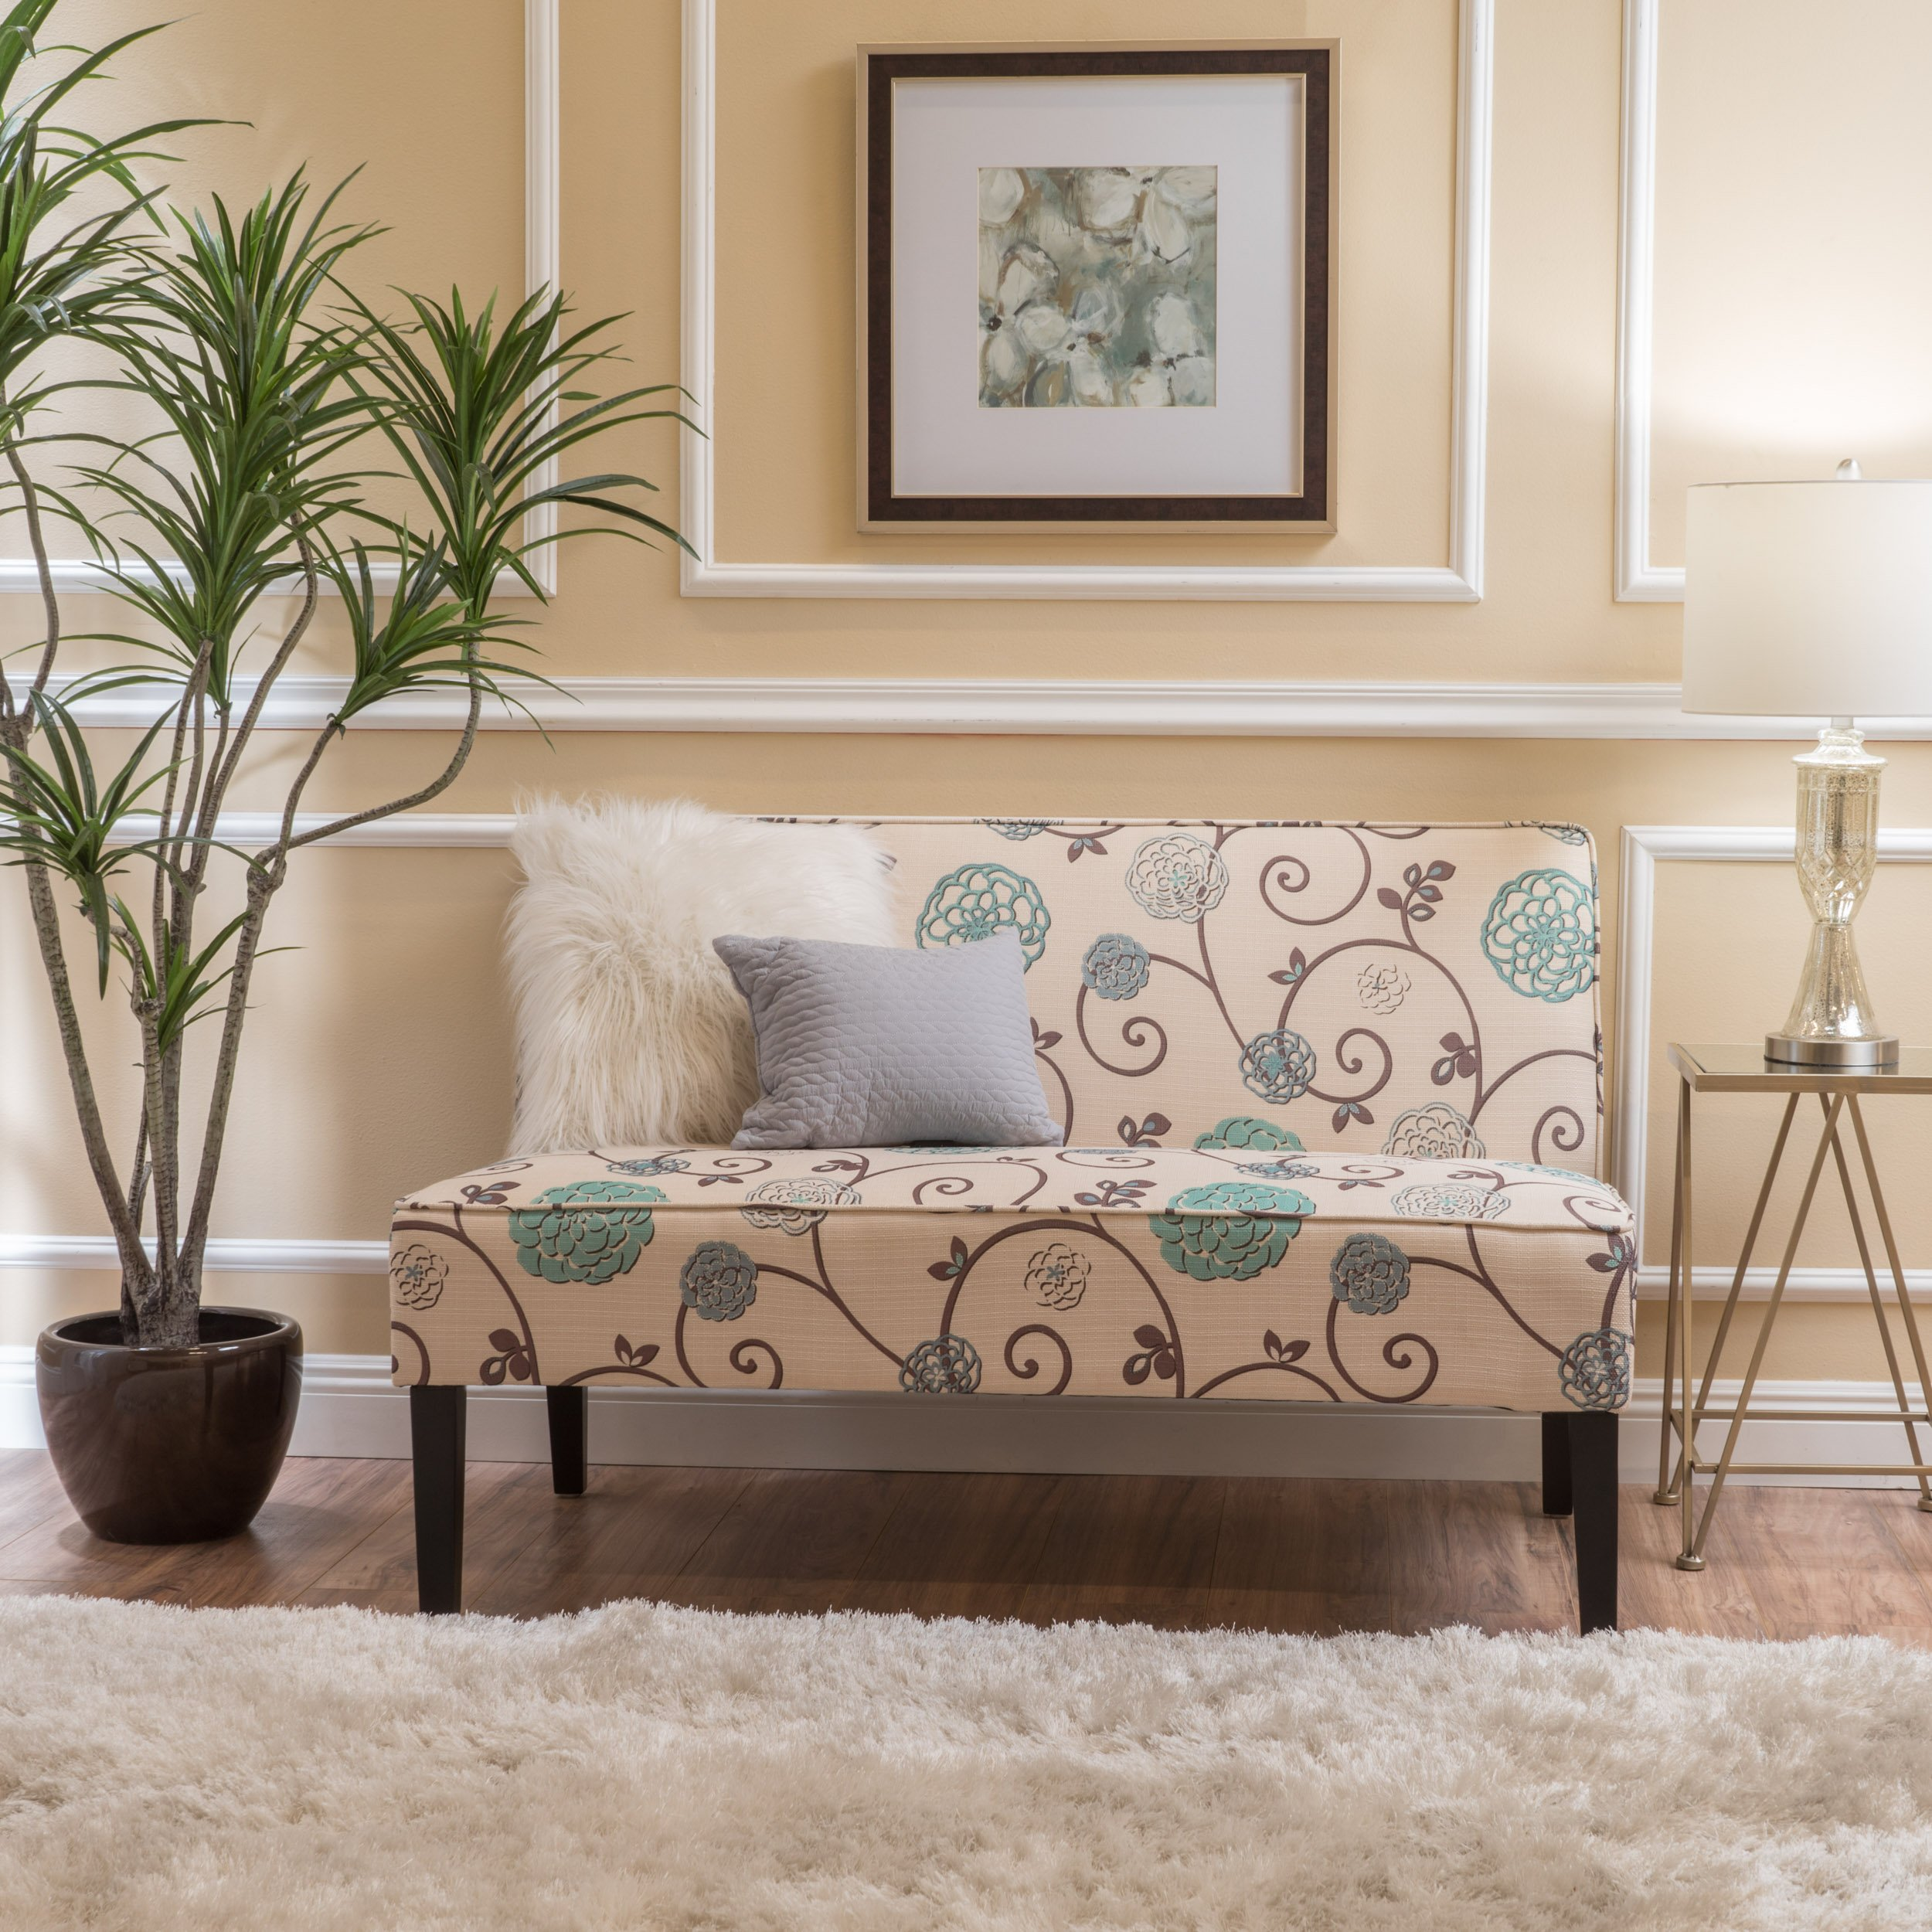 Christopher Knight Home Devlin White and Blue Floral Fabric Love Seat by Christopher Knight Home